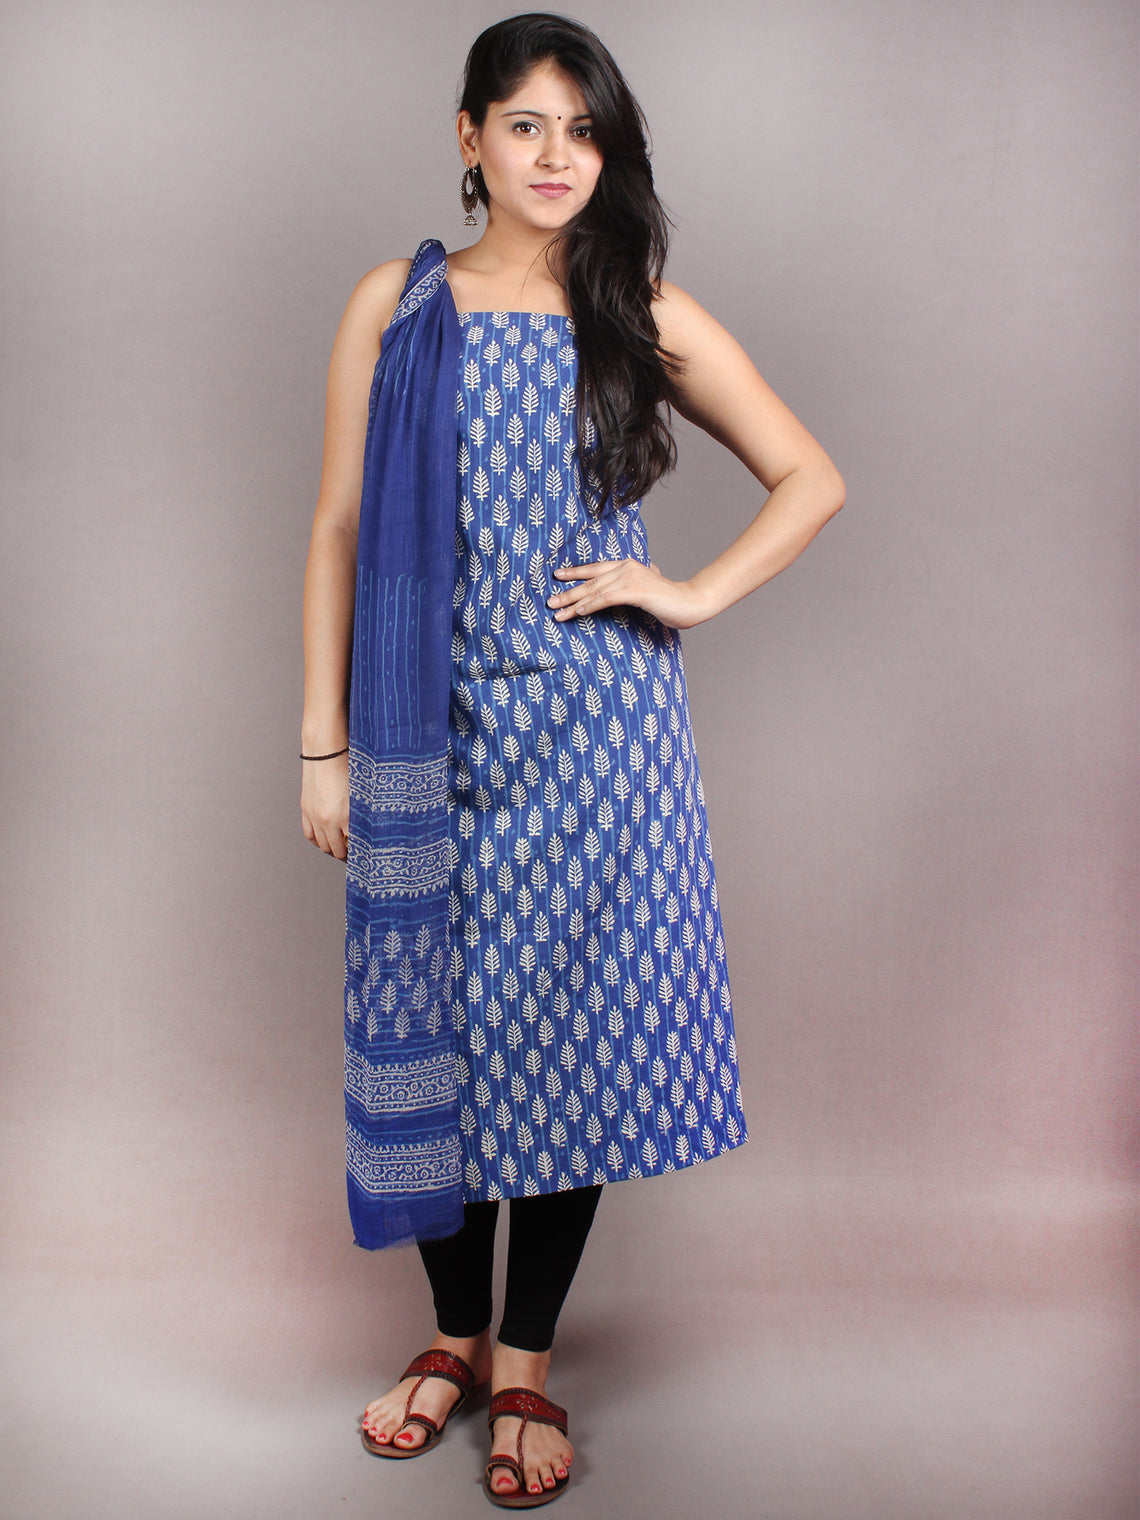 Indigo White Black Hand Block Printed Cotton Suit-Salwar Fabric With Chiffon Dupatta - S1628062